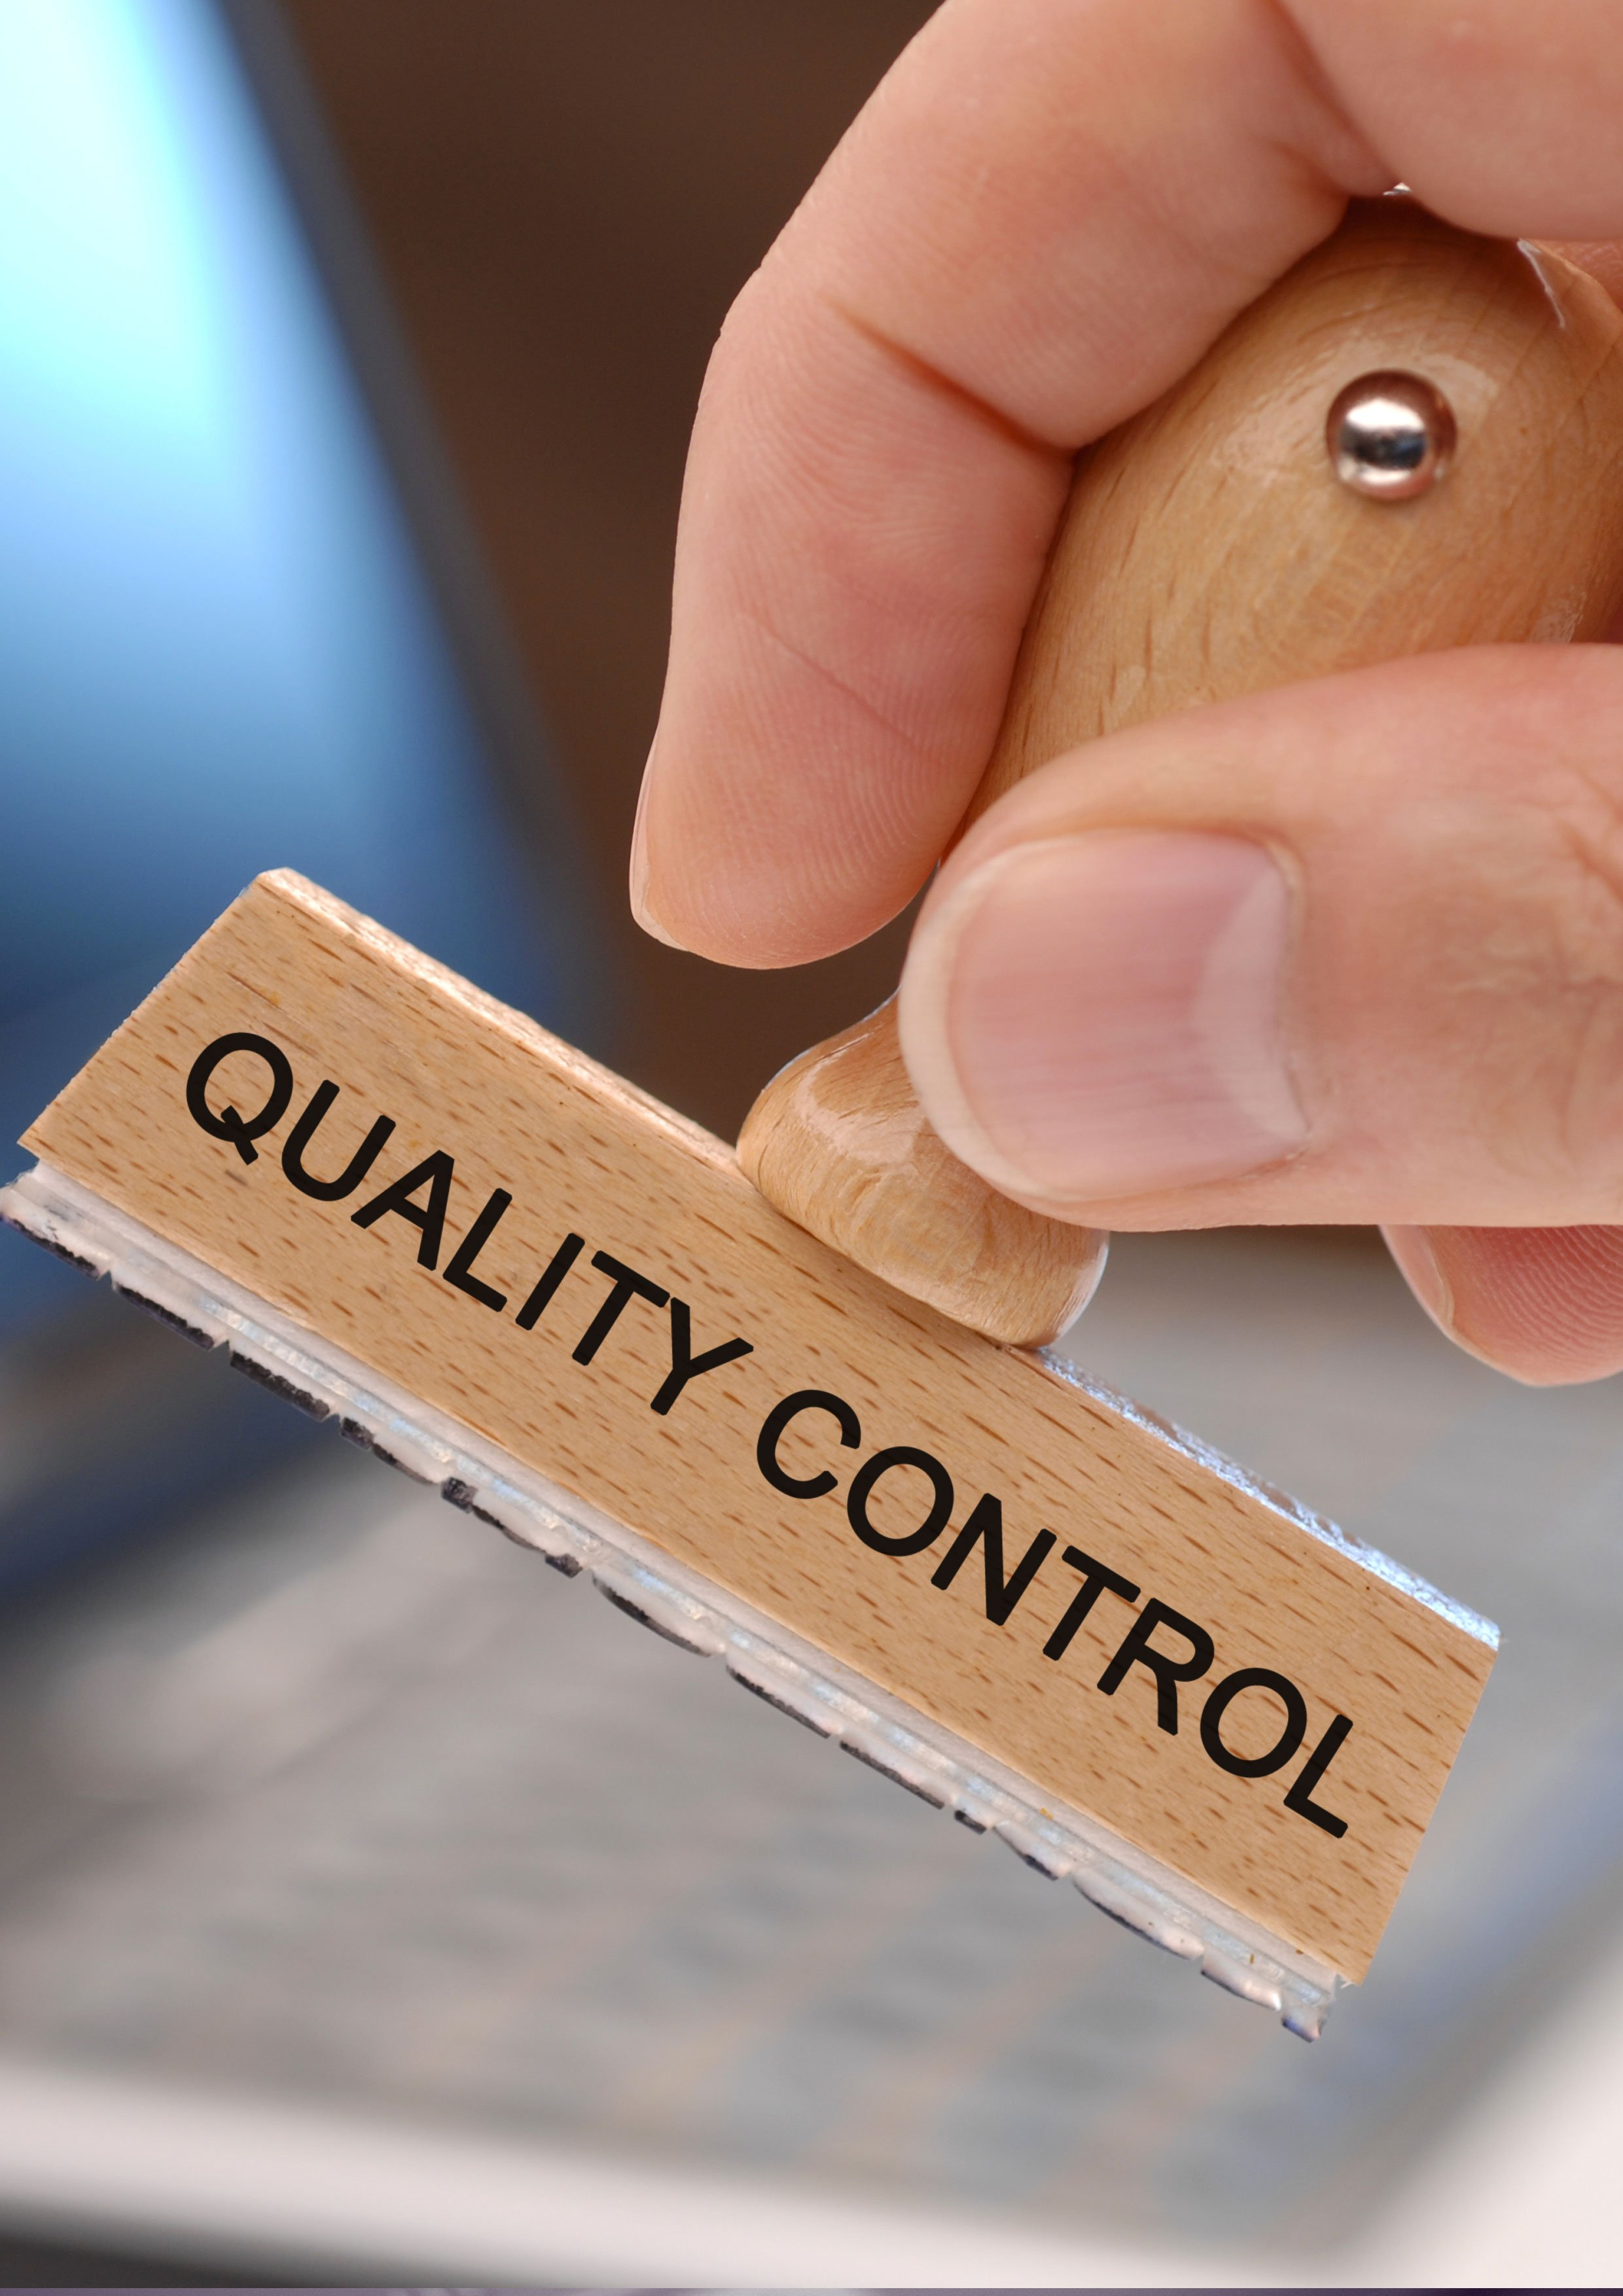 Quality control in education pdf